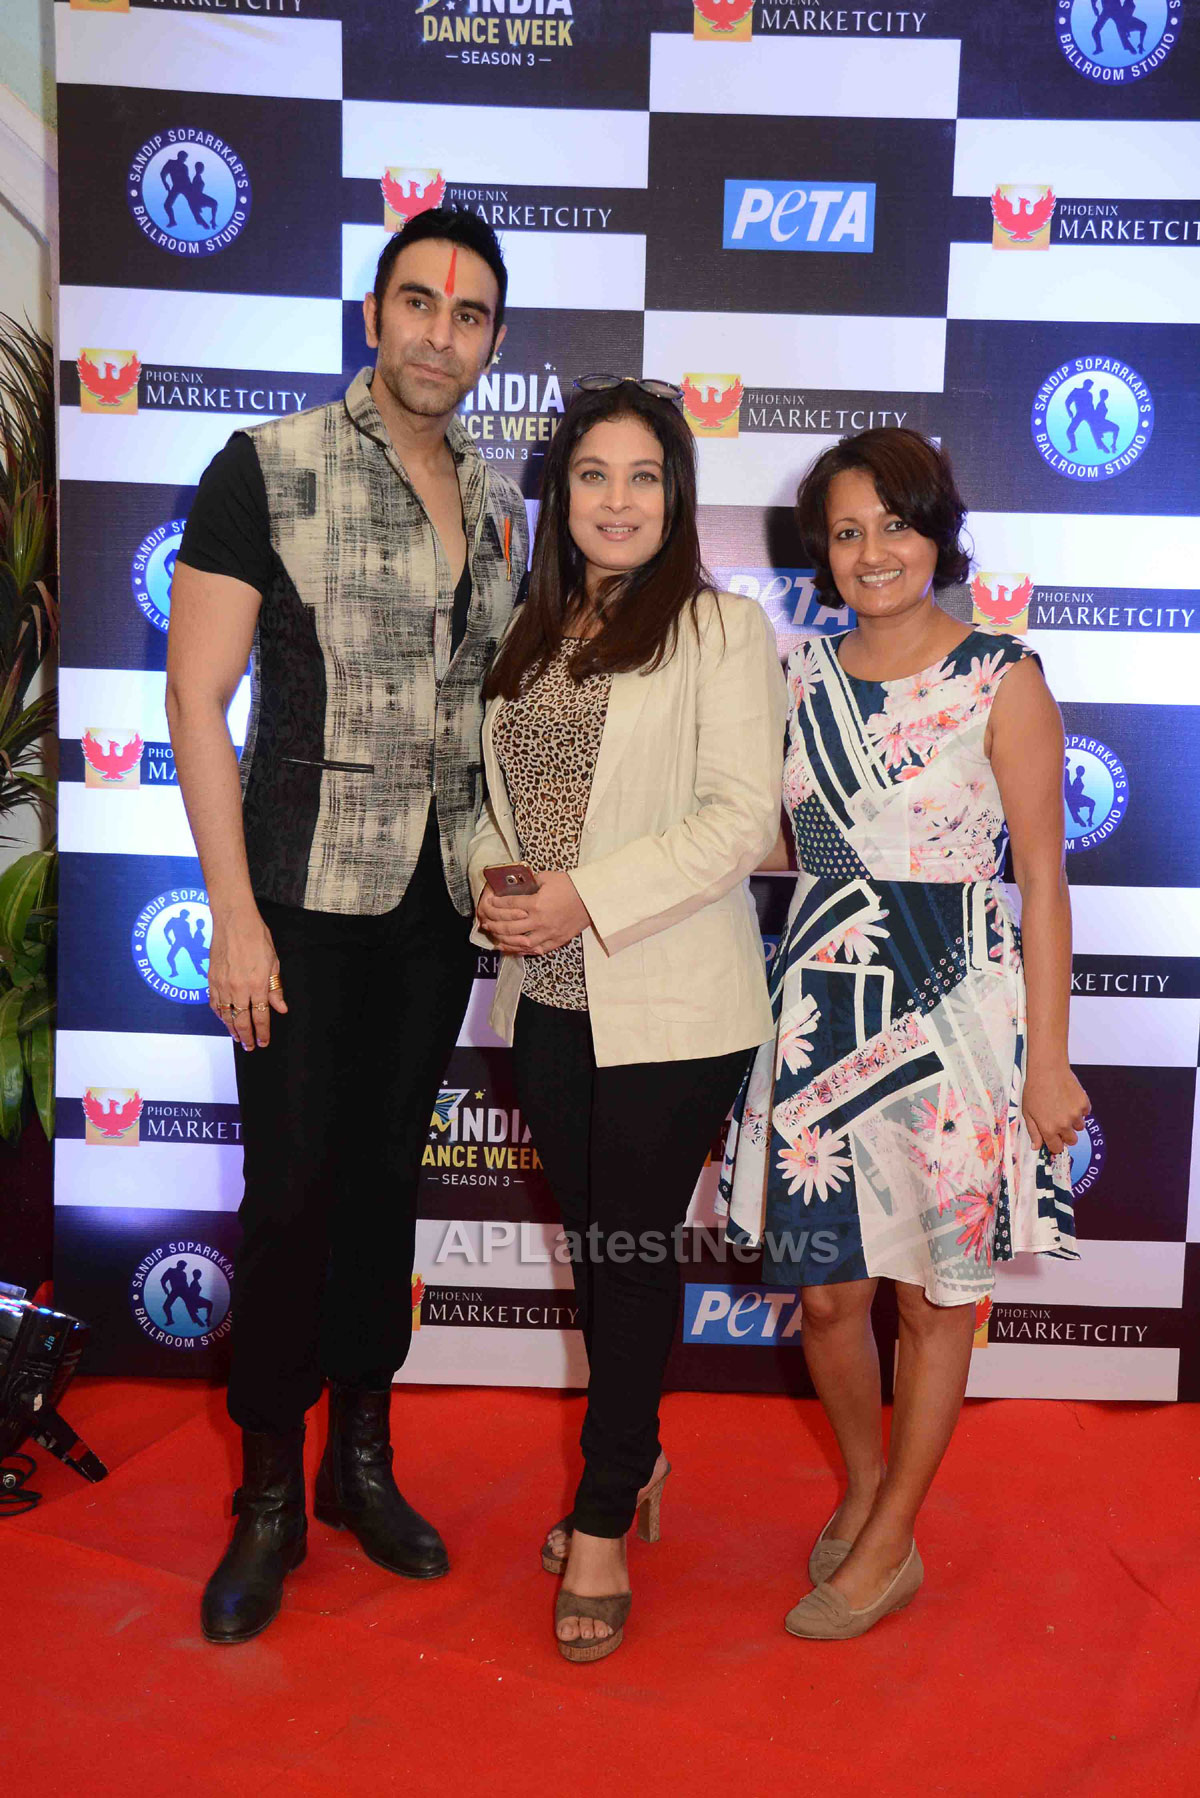 Actor Rahul Roy, Avika Gor, Gaurav Gera attends 3rd India Dance Week conference hosted by Sandip Soparrkar - Picture 10